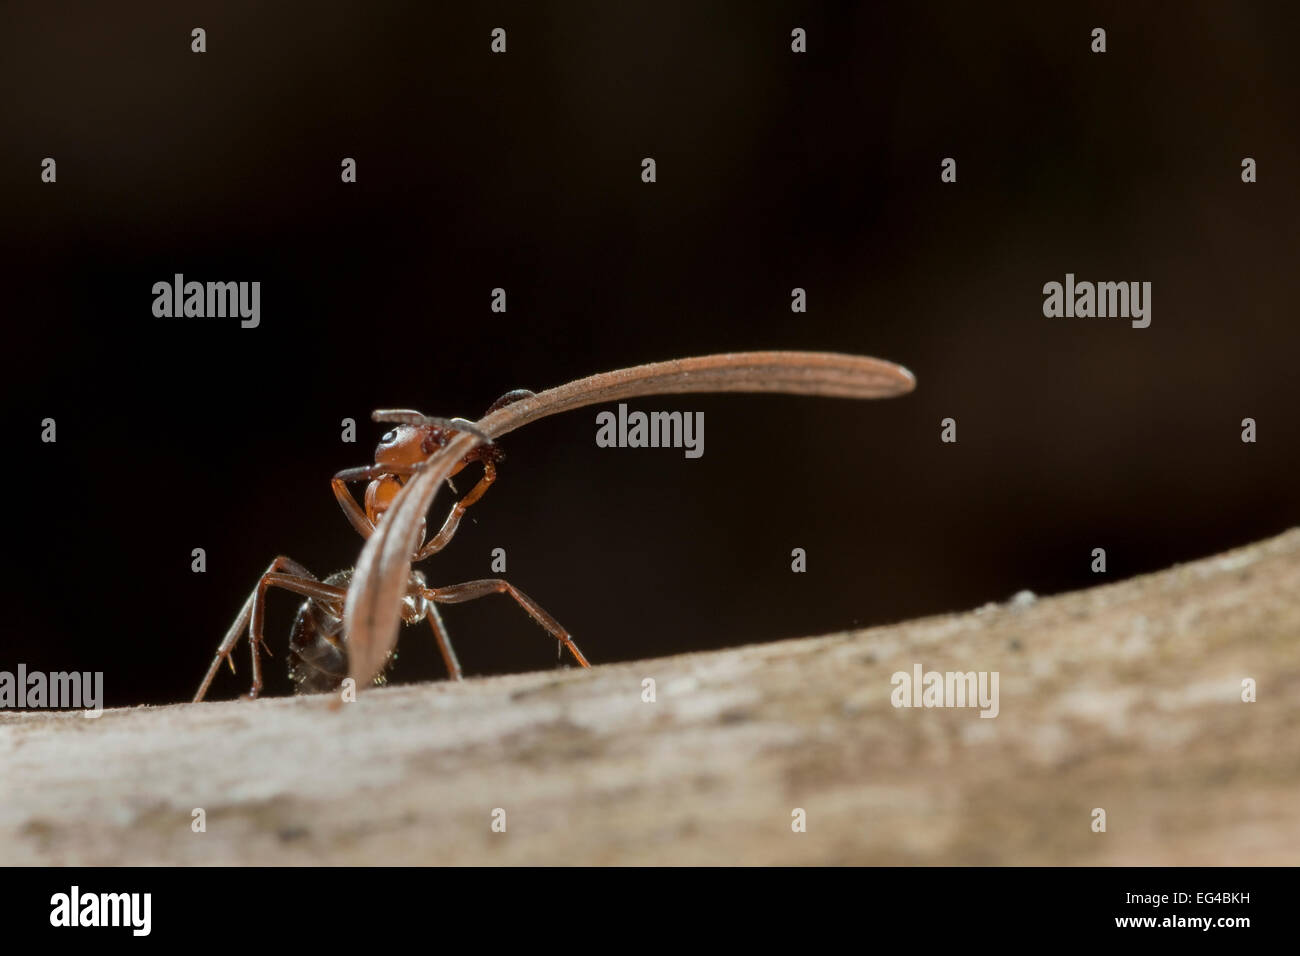 Red wood ant (Formica rufa) carrying construction material to anthill (fir needles) Germany. Stock Photo